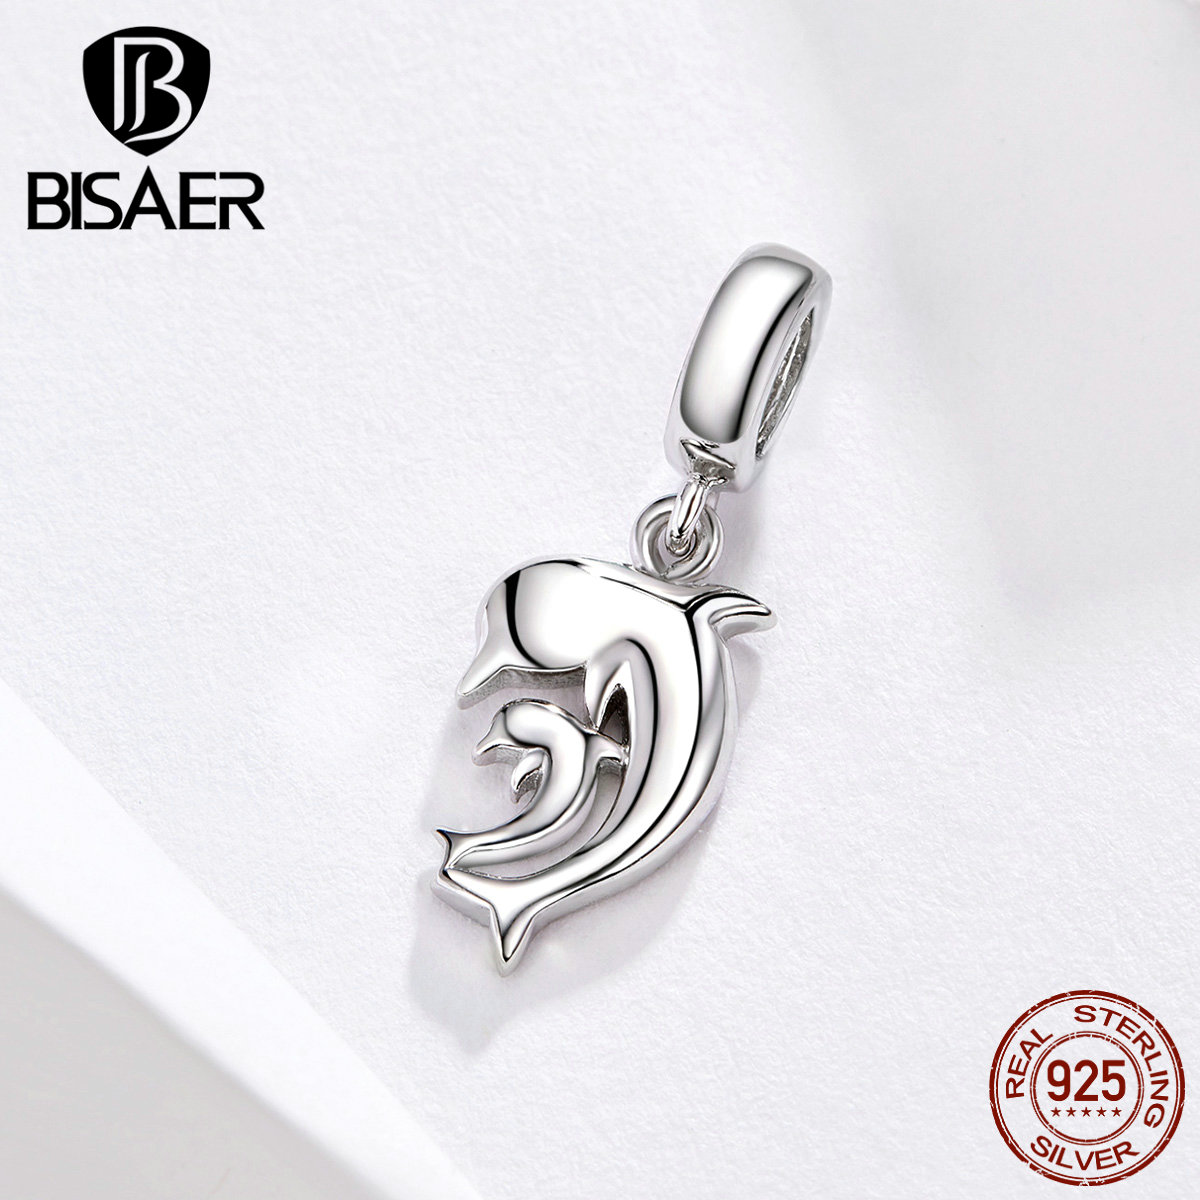 BISAER Dolphin Charms 925 Sterling Silver Cute Dolphin Mom And Kids Love Beads Fit Mother Bracelets Gift DIY Jewelry ECC1206